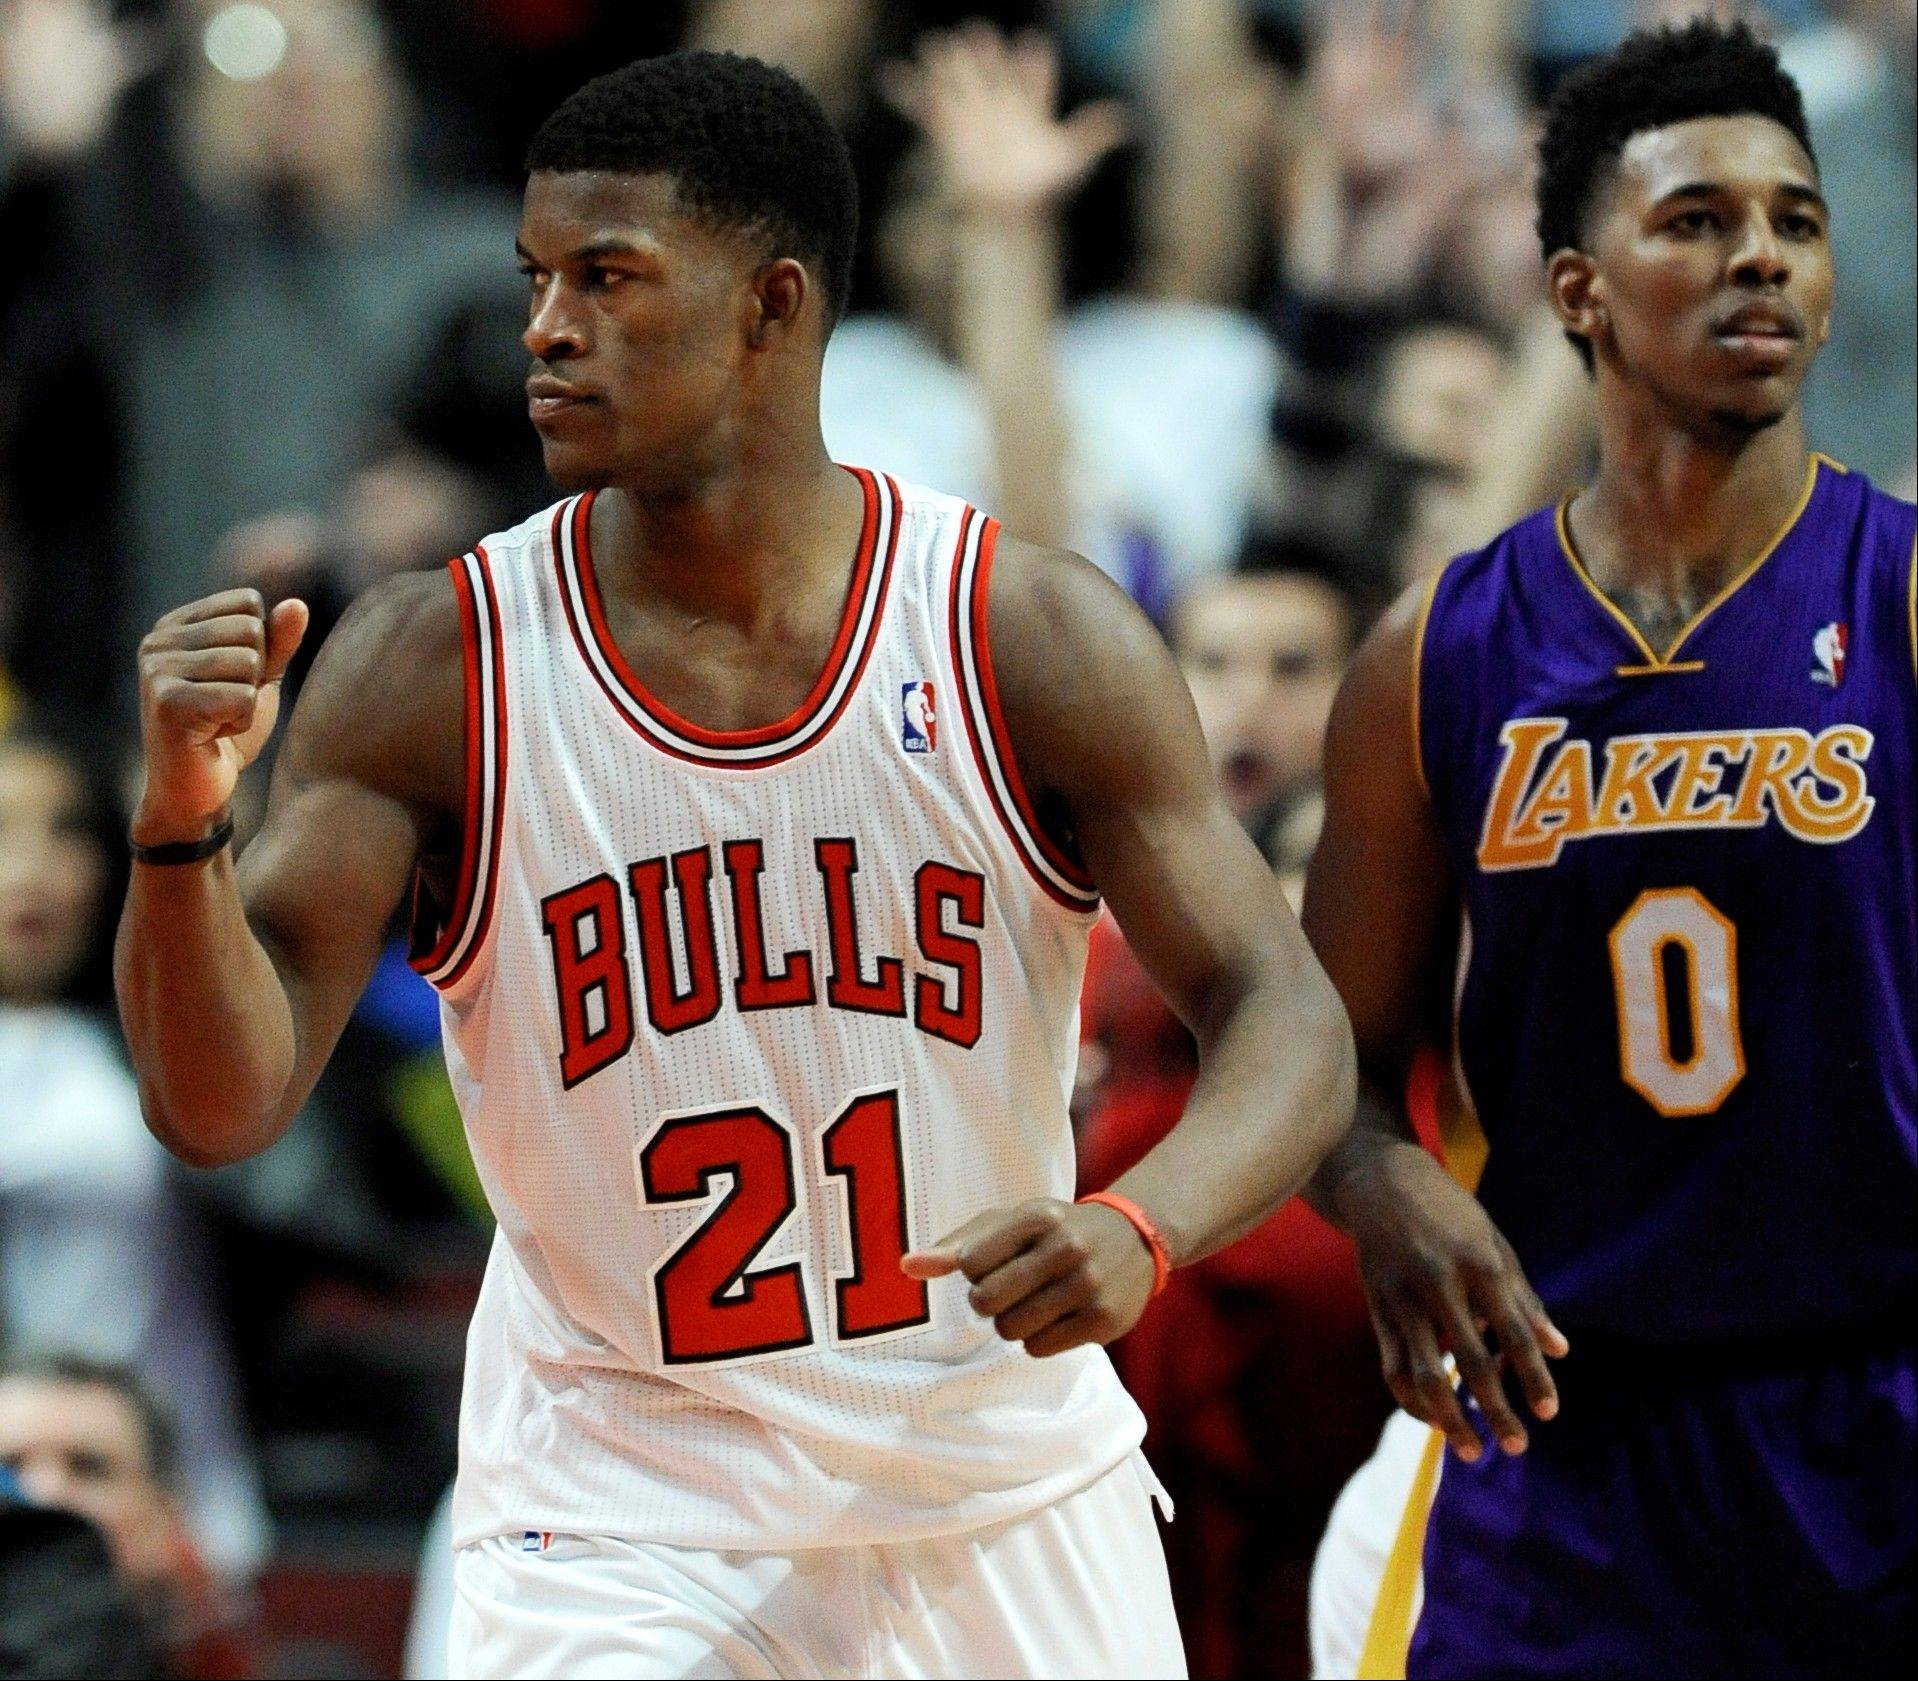 The Bulls� Jimmy Butler celebrates while Los Angeles Lakers� Nick Young looks on after Taj Gibson made the game-winning shot in overtime to defeat the Lakers 102-100 during an NBA basketball game in Chicago, Monday, Jan. 20, 2014.